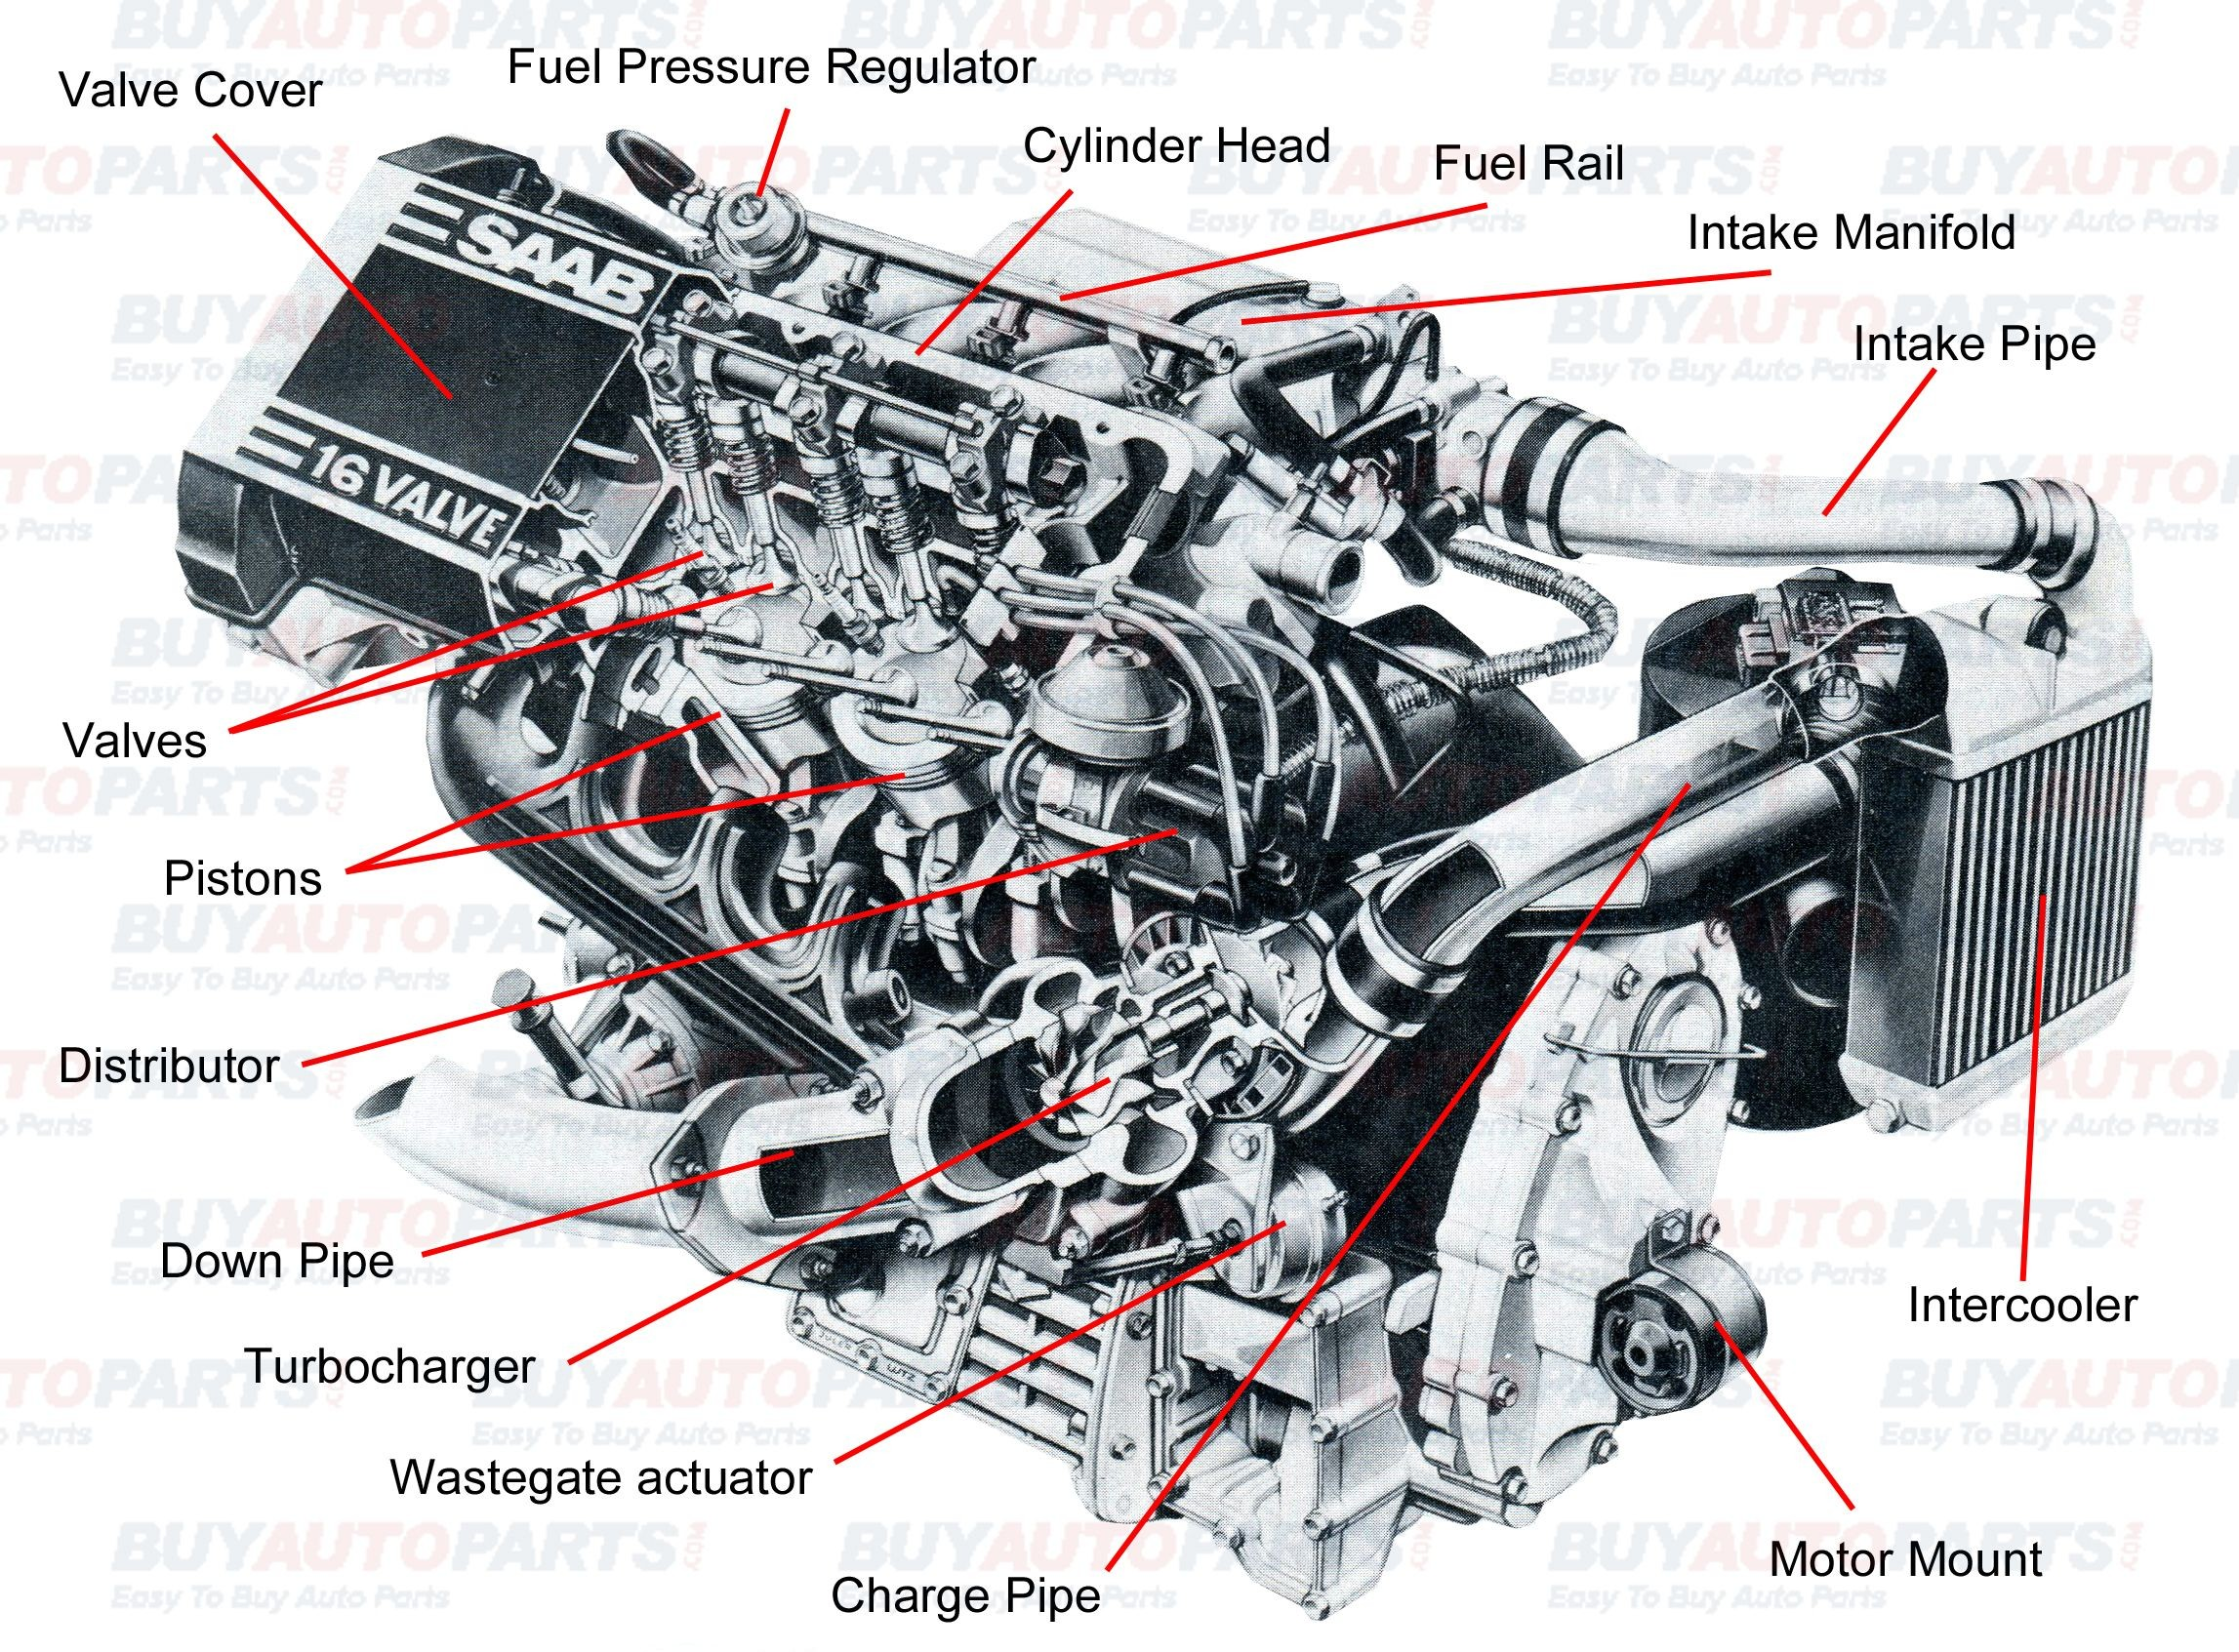 Small Engine Parts Diagram Pin by Jimmiejanet Testellamwfz On What Does An Engine with Turbo Of Small Engine Parts Diagram